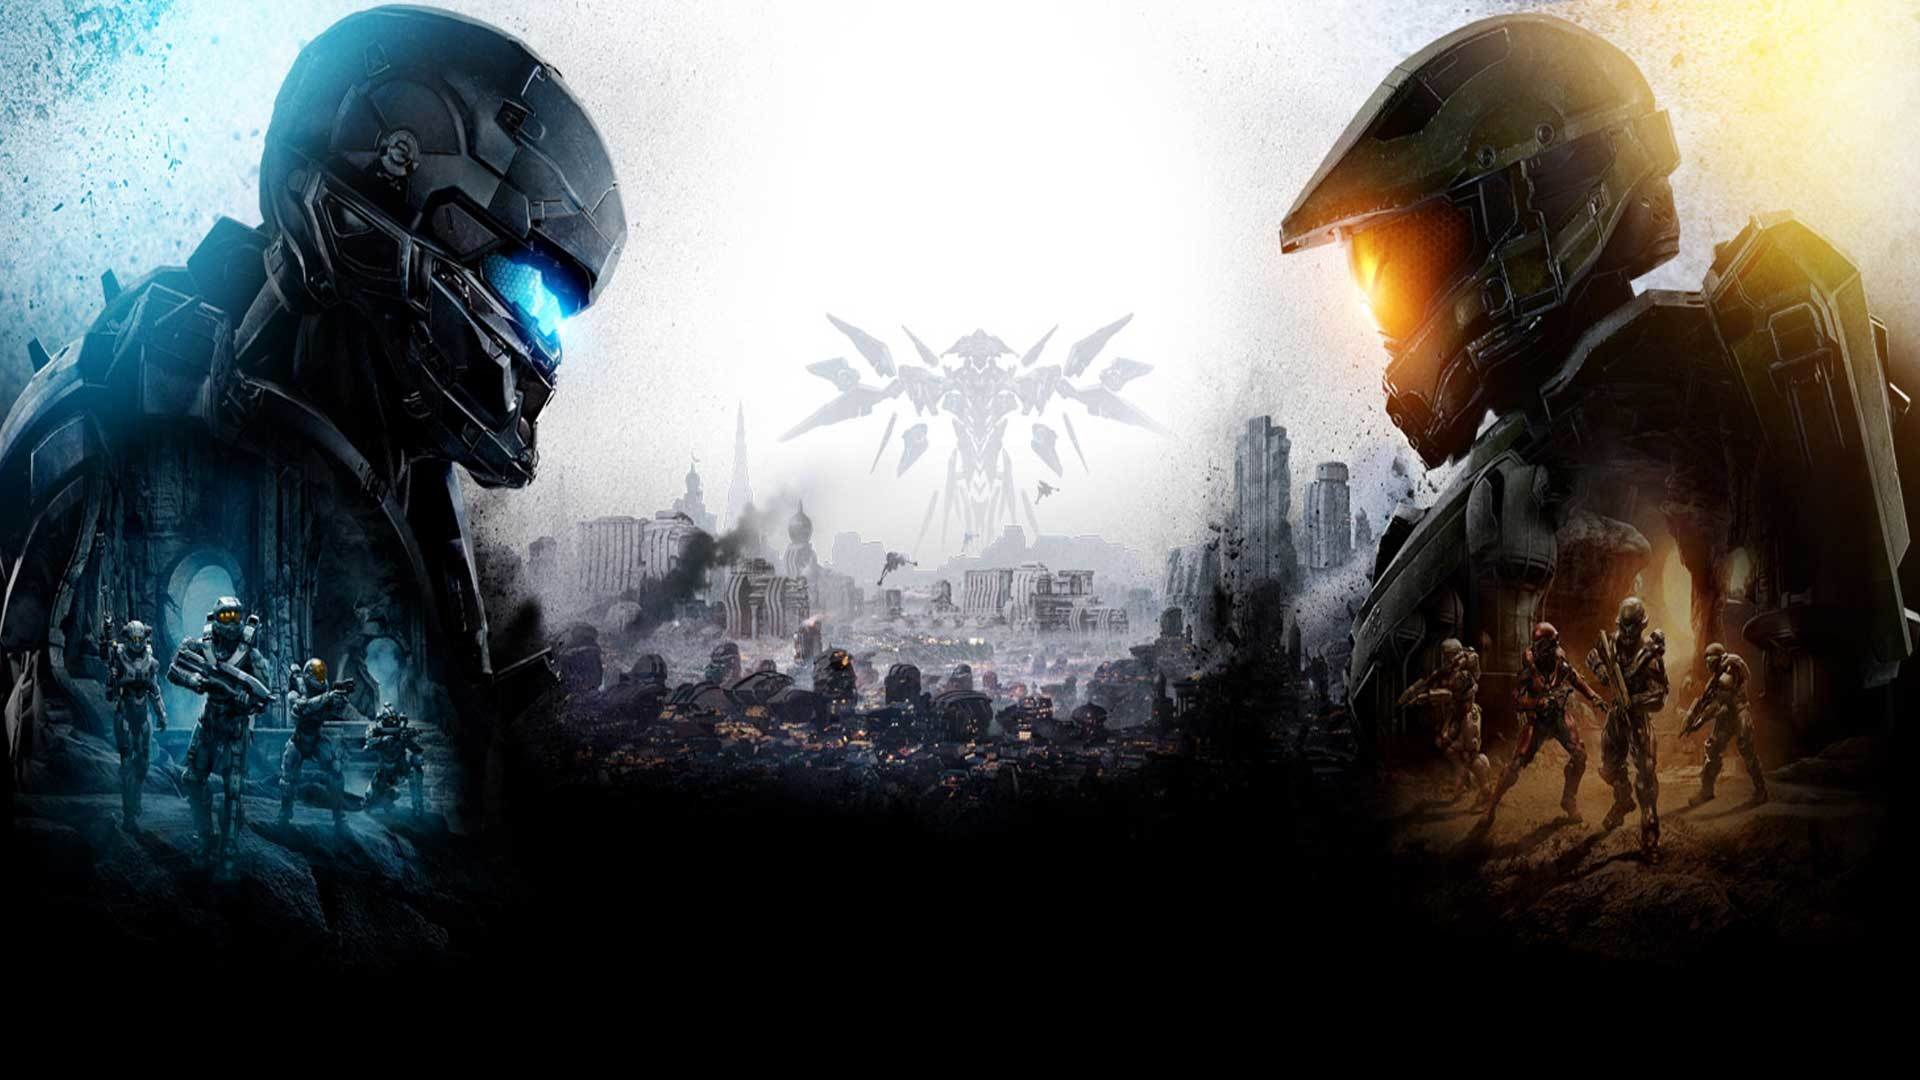 Halo 5 Chief wallpapers (19 Wallpapers)